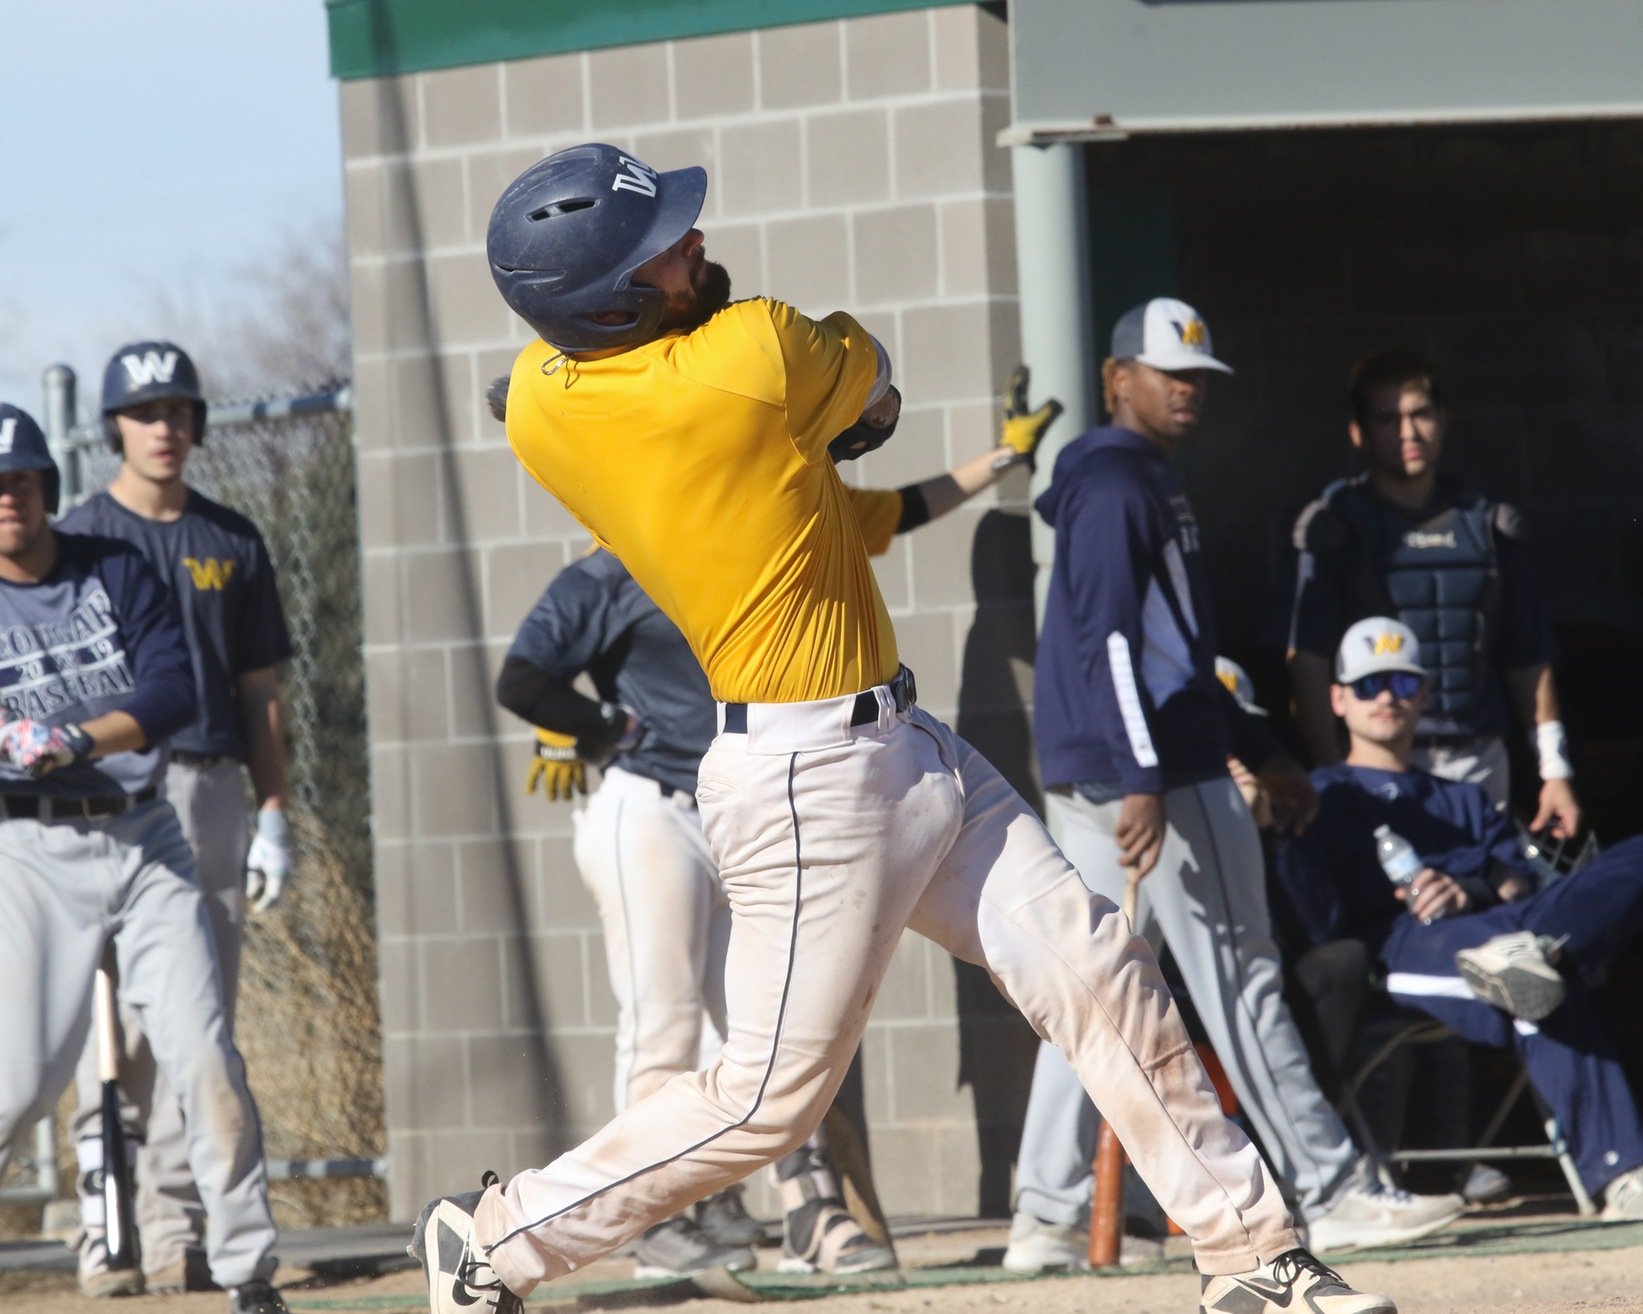 WNCC baseball opens season this weekend in Colorado